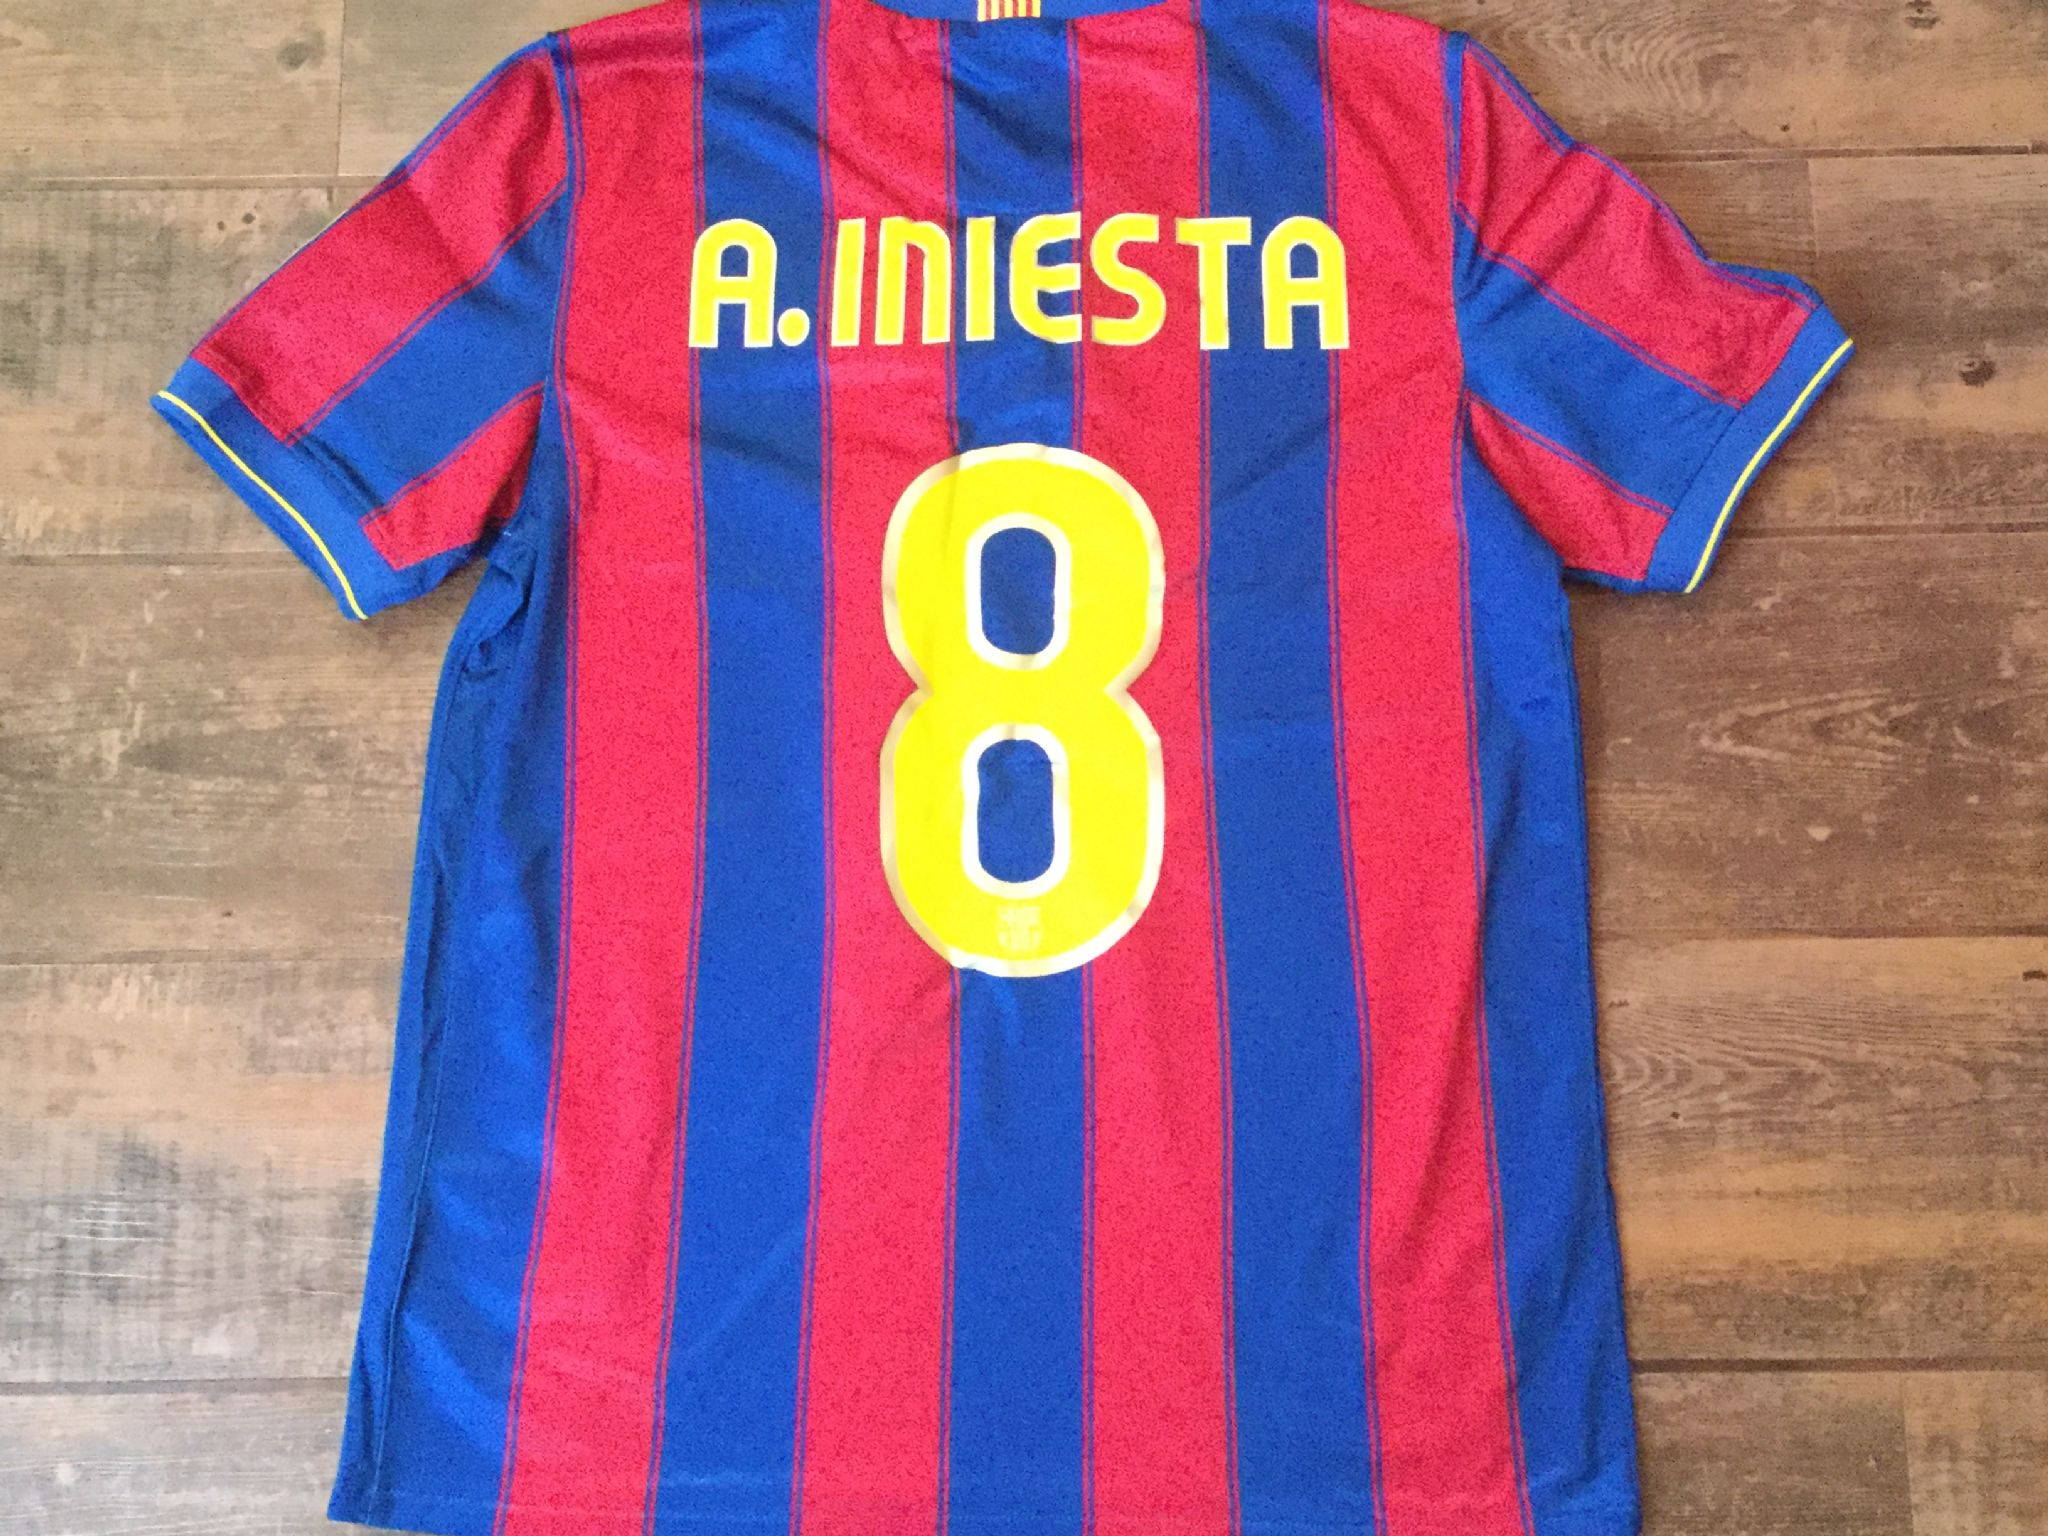 faa9b1e08 2009 2010 Barcelona Iniesta Football Shirt Adults Medium